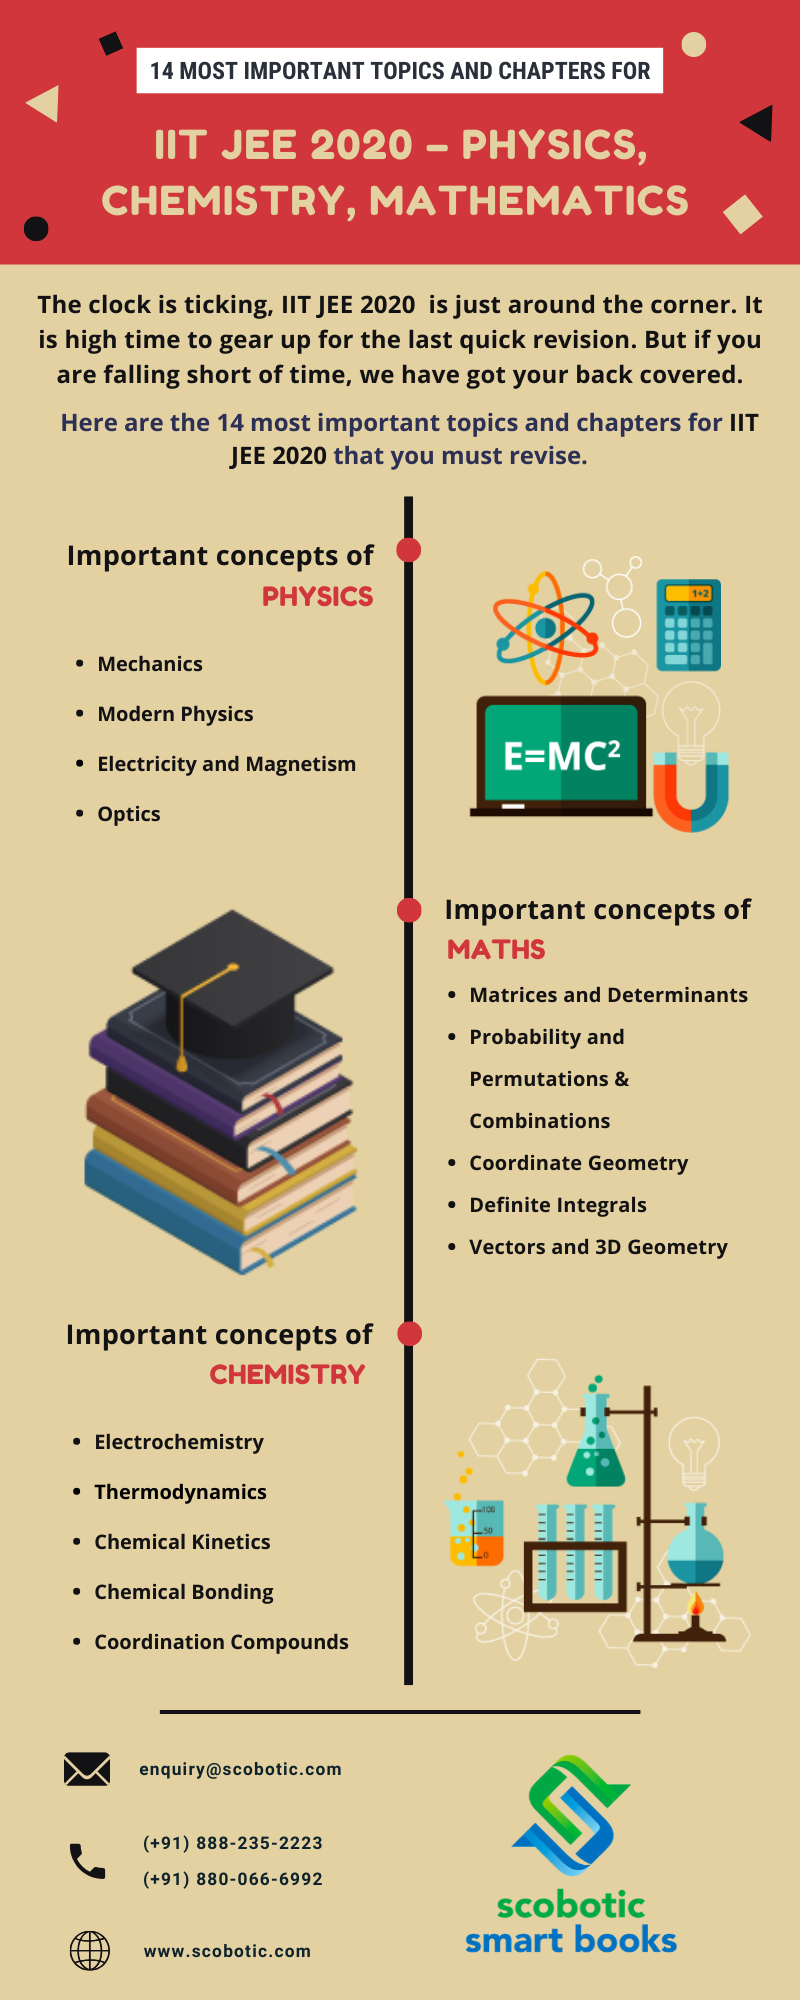 14 Most Important Topics And Chapters For Iit Jee 2020 Physics Chemistry Mathematics In 2020 Physics Study Plan Mathematics